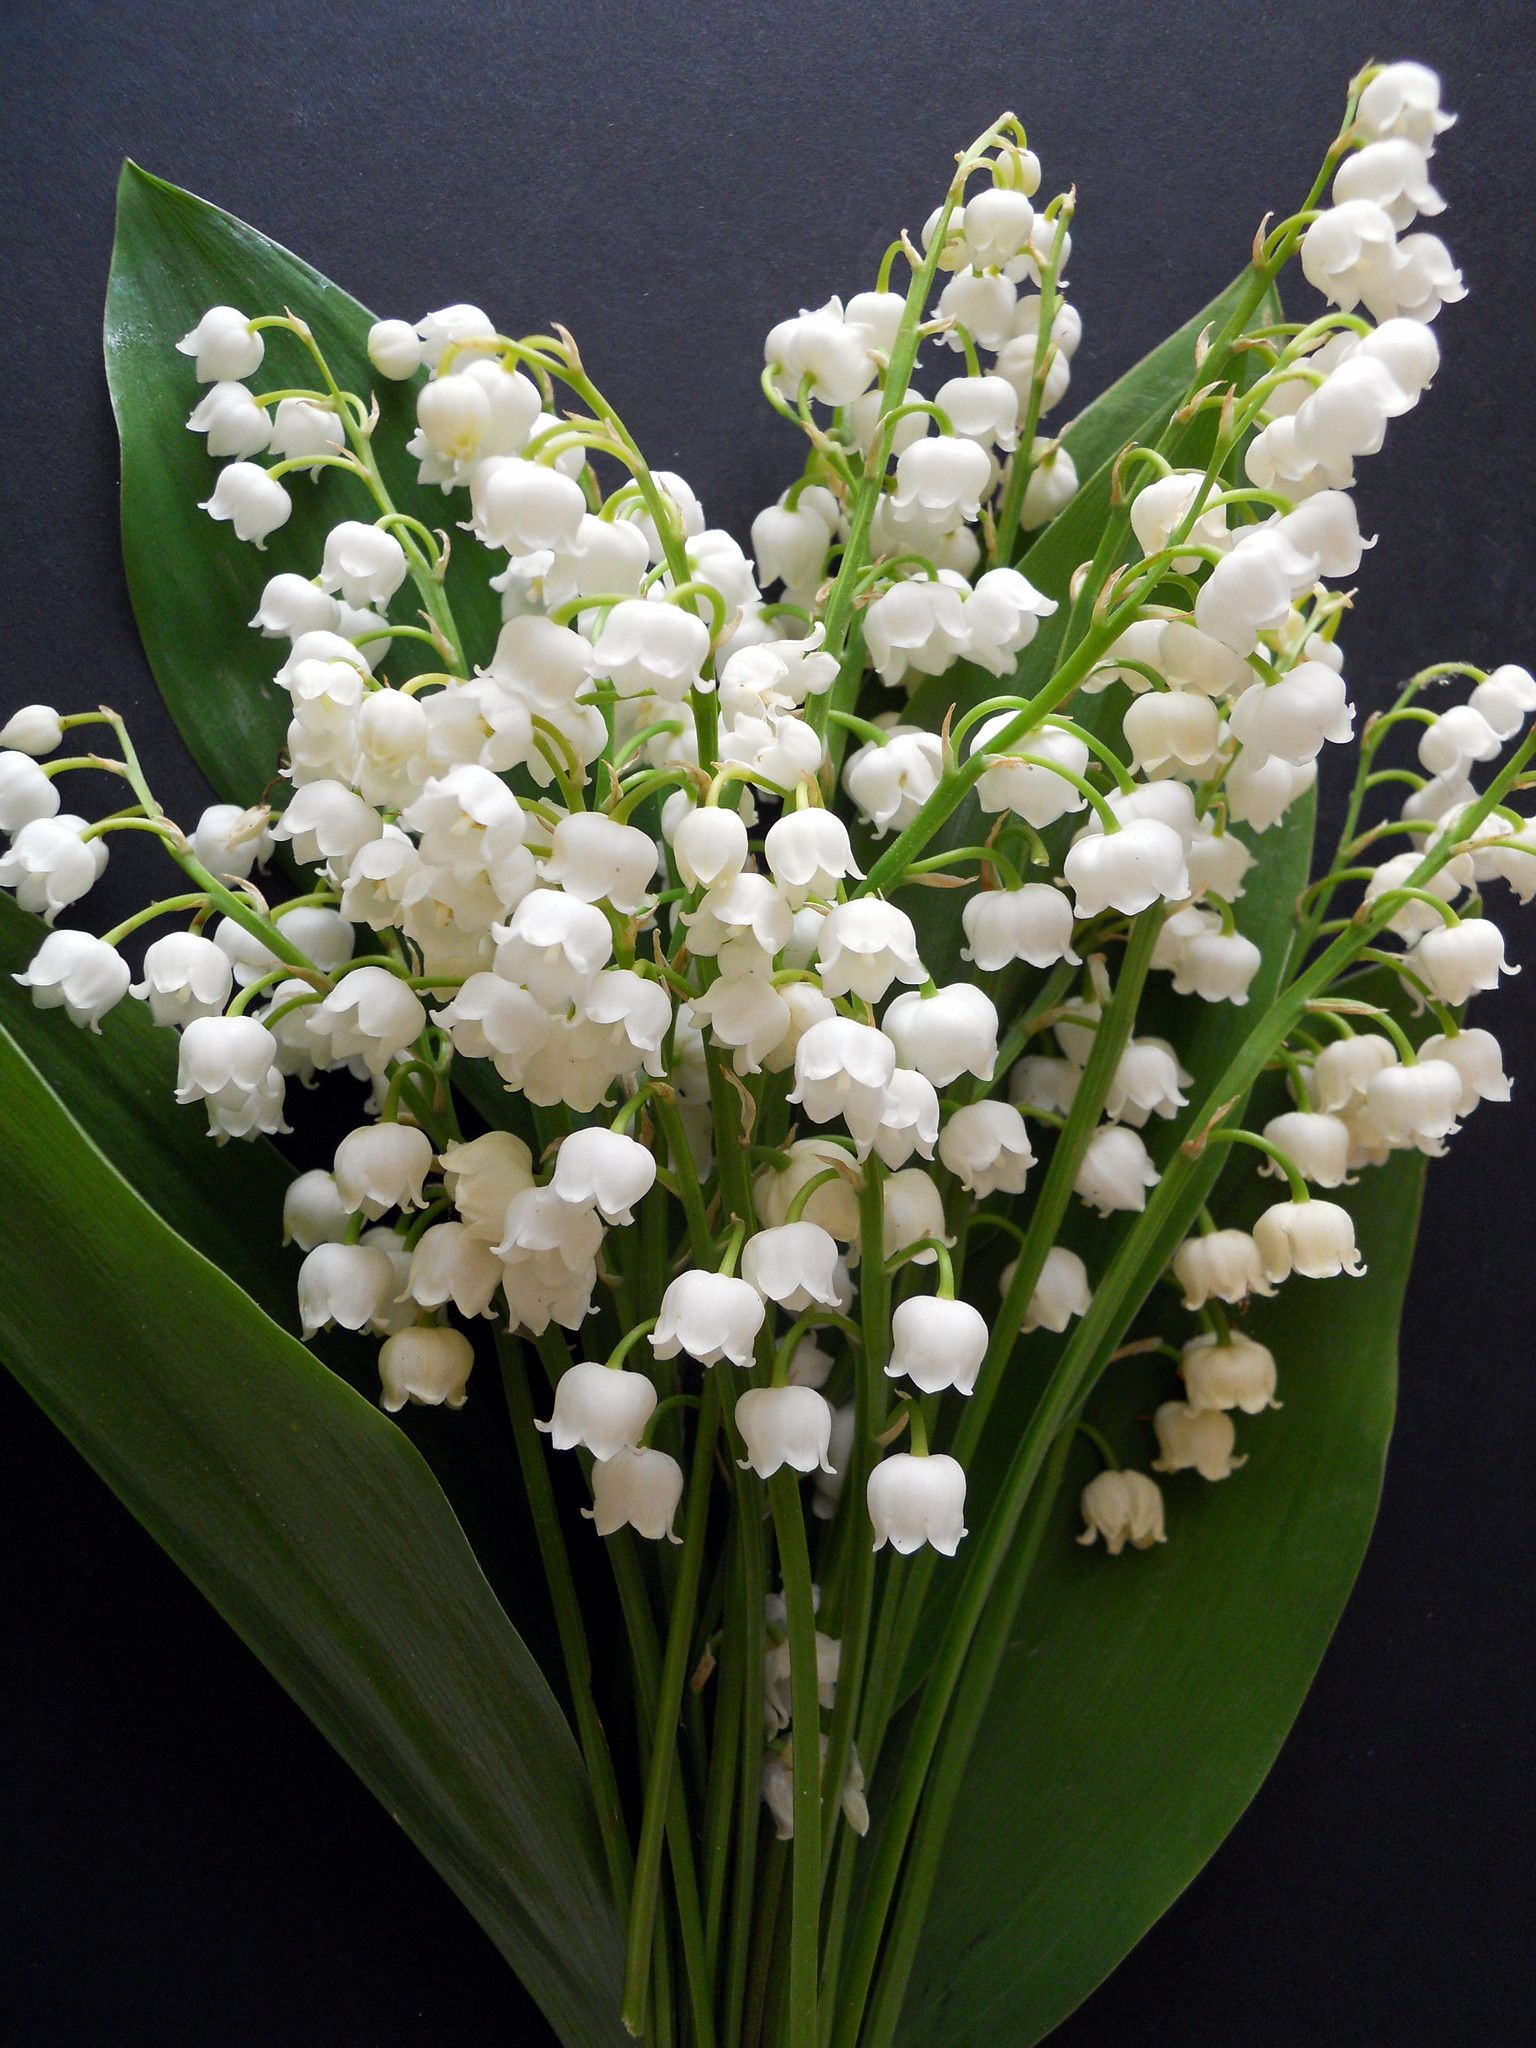 Lily Of The Valley Convallaria Majalis In 2020 Lily Of The Valley Flowers Valley Flowers May Birth Flowers